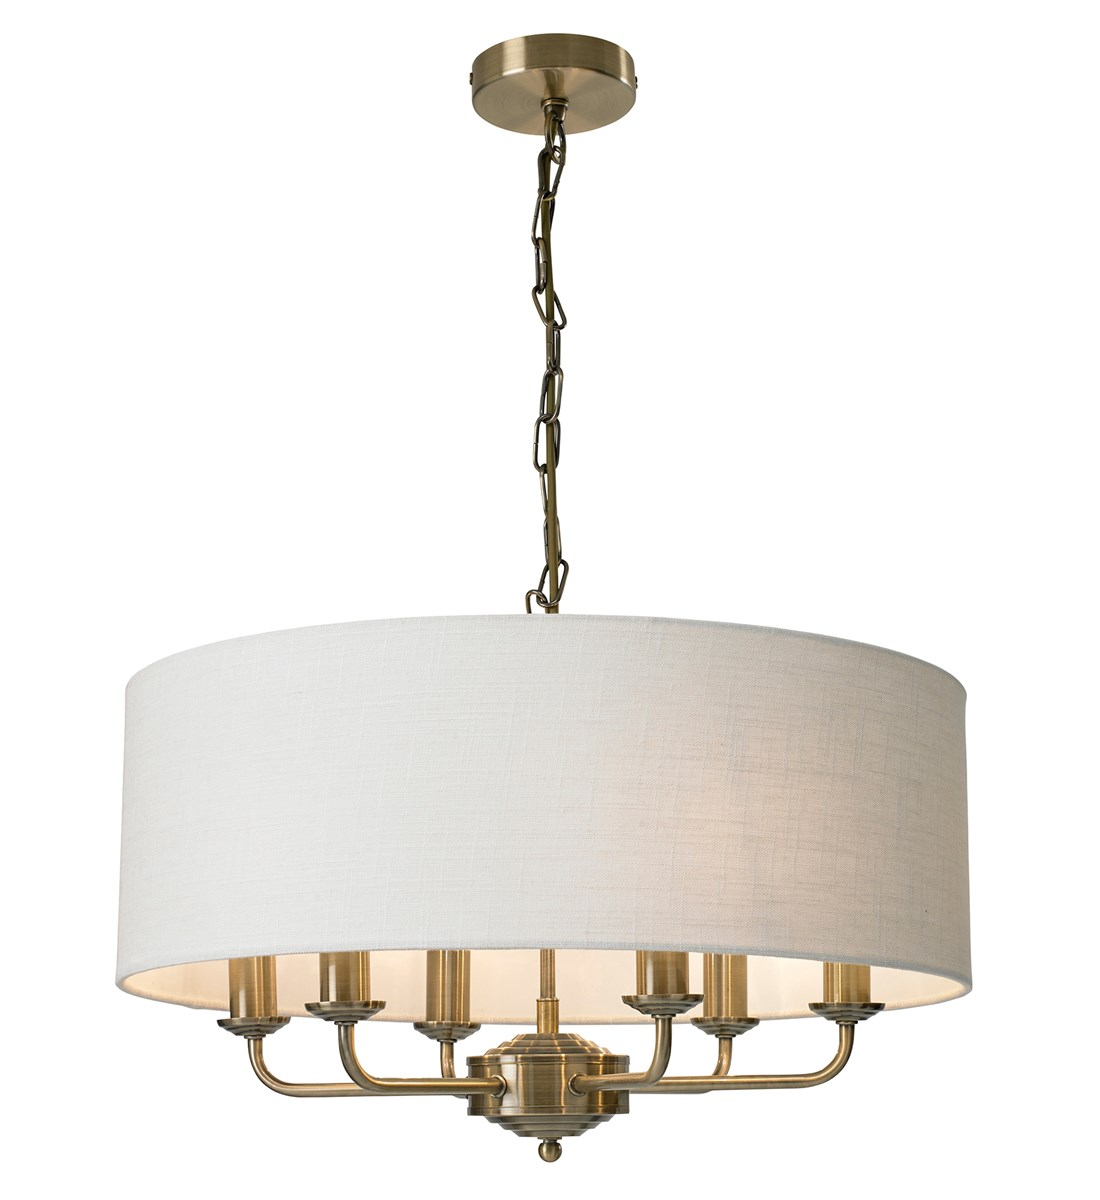 Grantham 6 Light Ceiling Fitting Antique Brass Multi Light Fitting